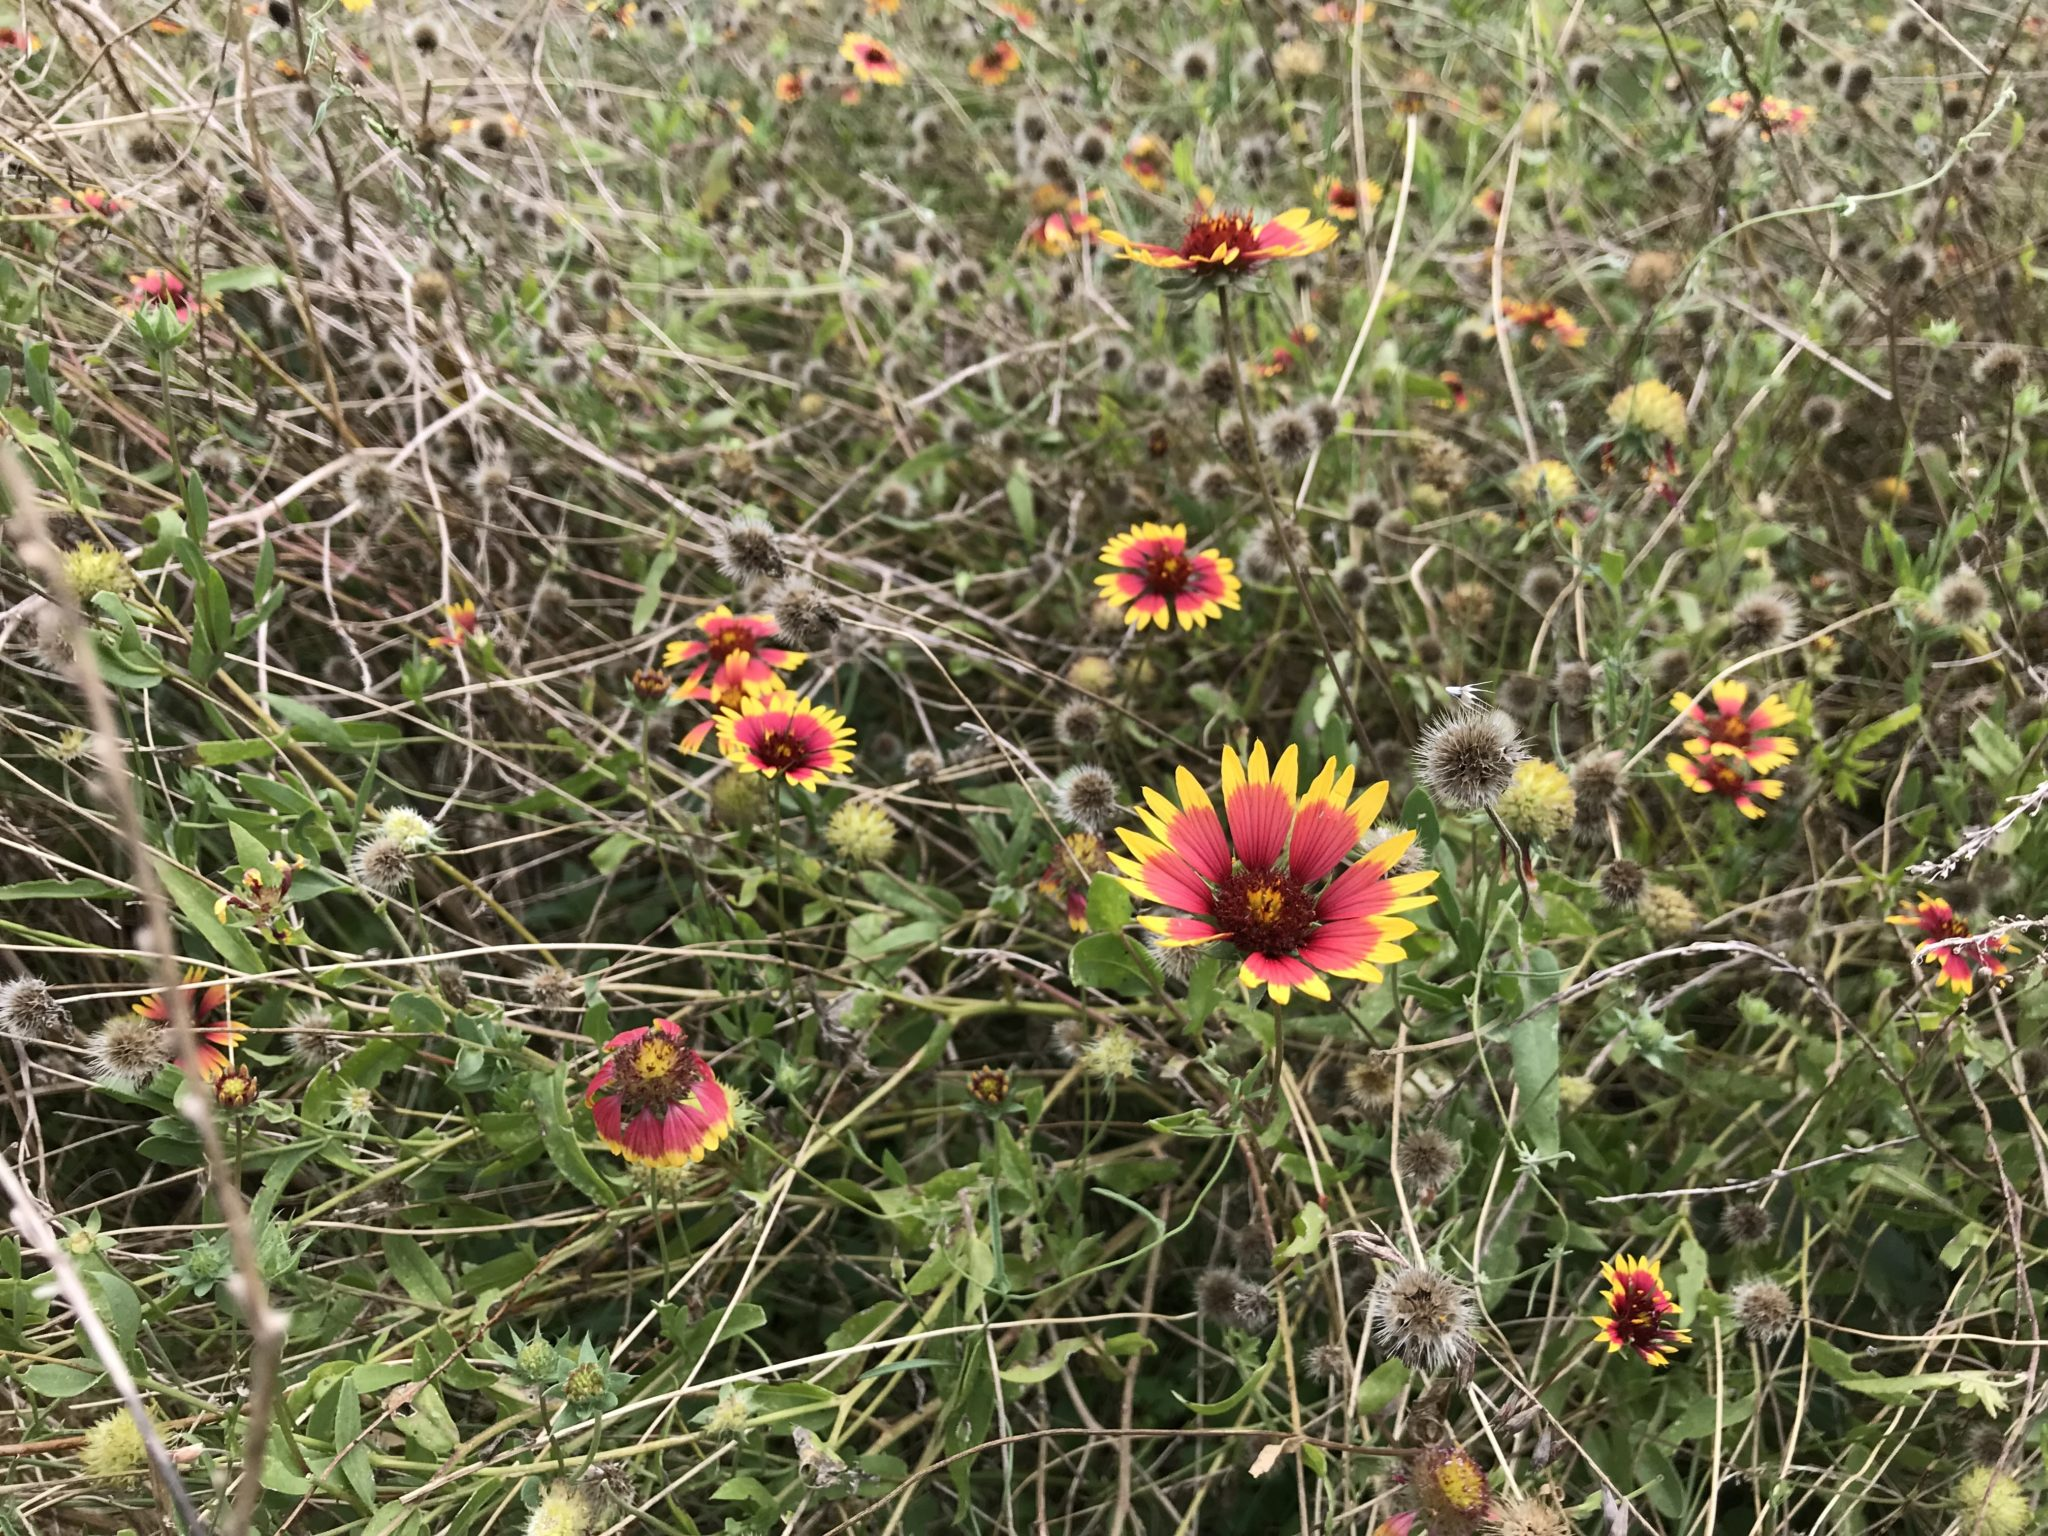 Indian blankets bloom near the trail at Crescent Bend Nature Park.